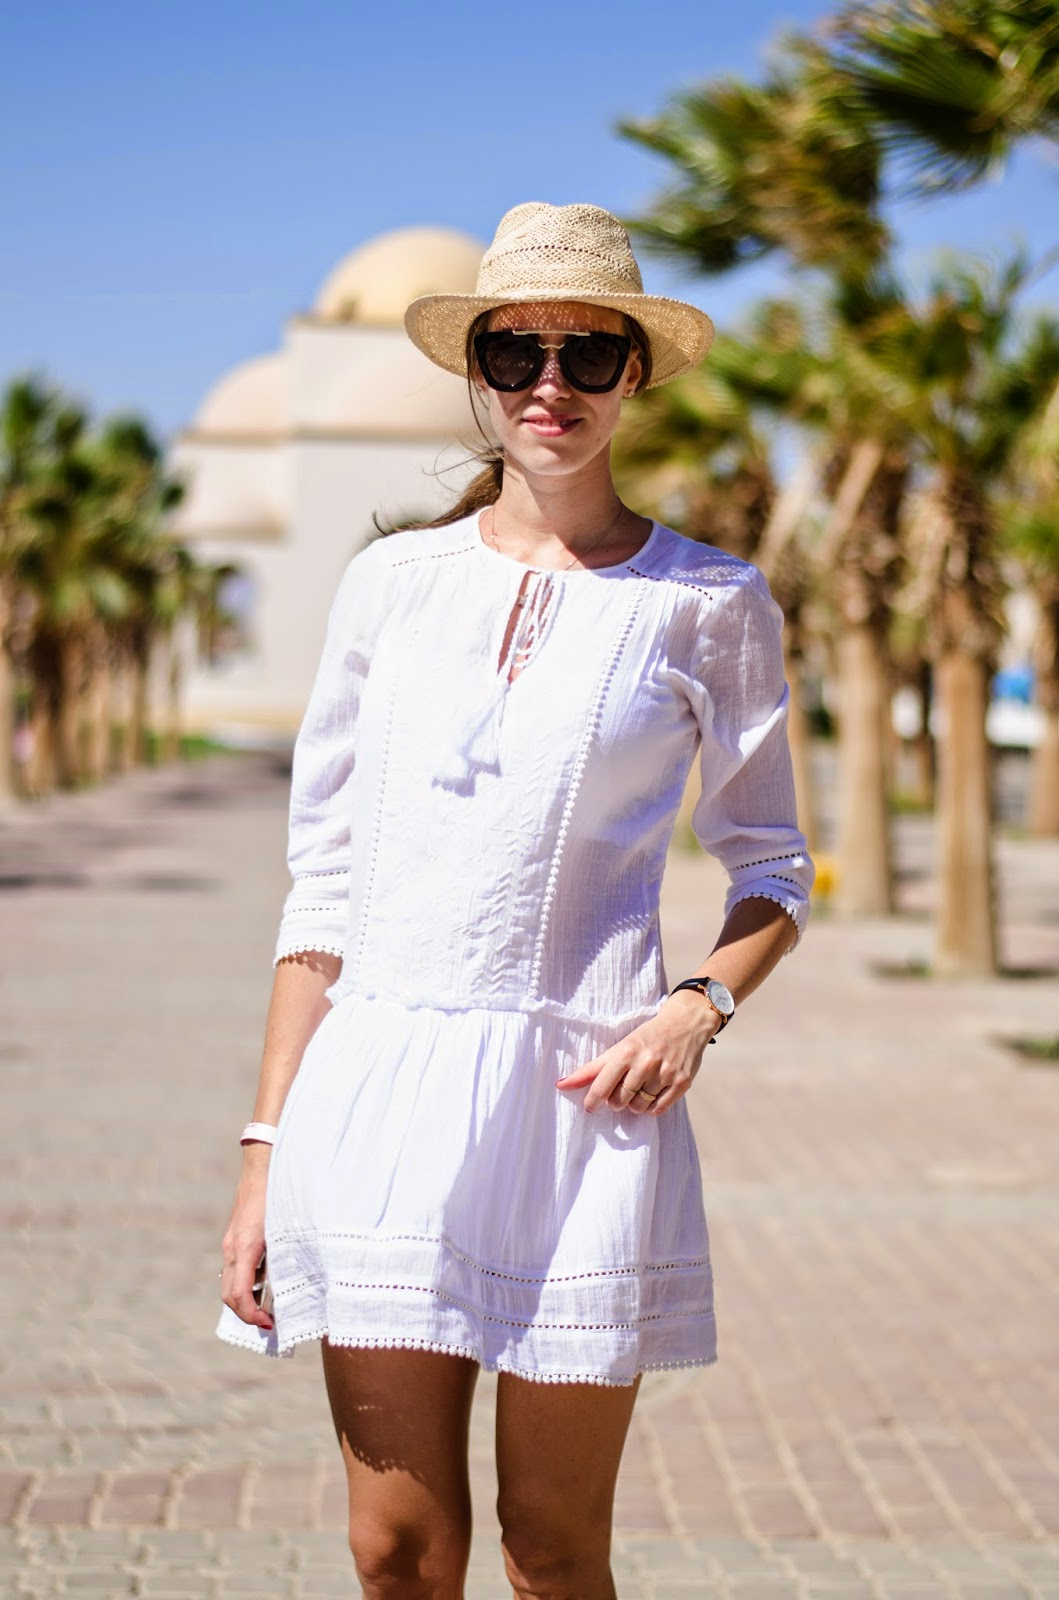 kristjaana mere white boho dress summer outfit